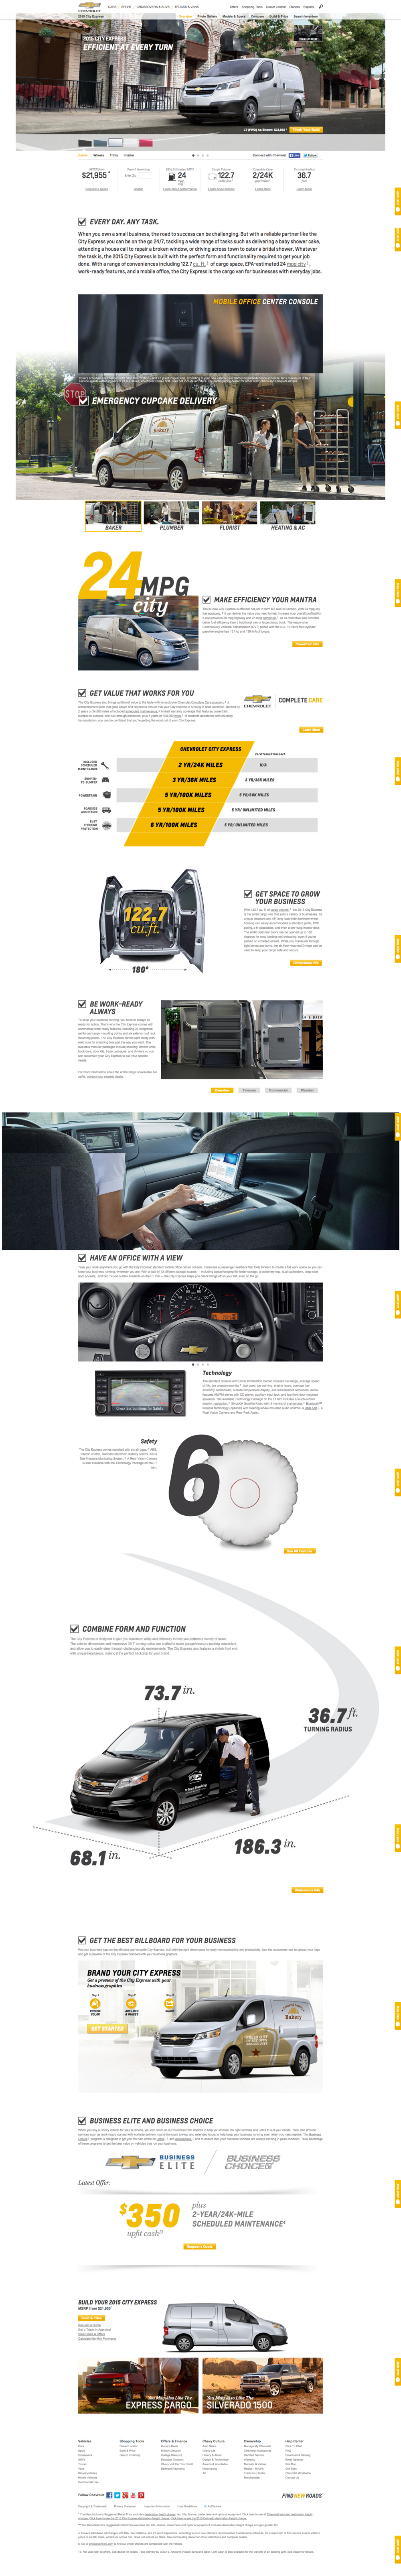 chevrolet.com desktop website